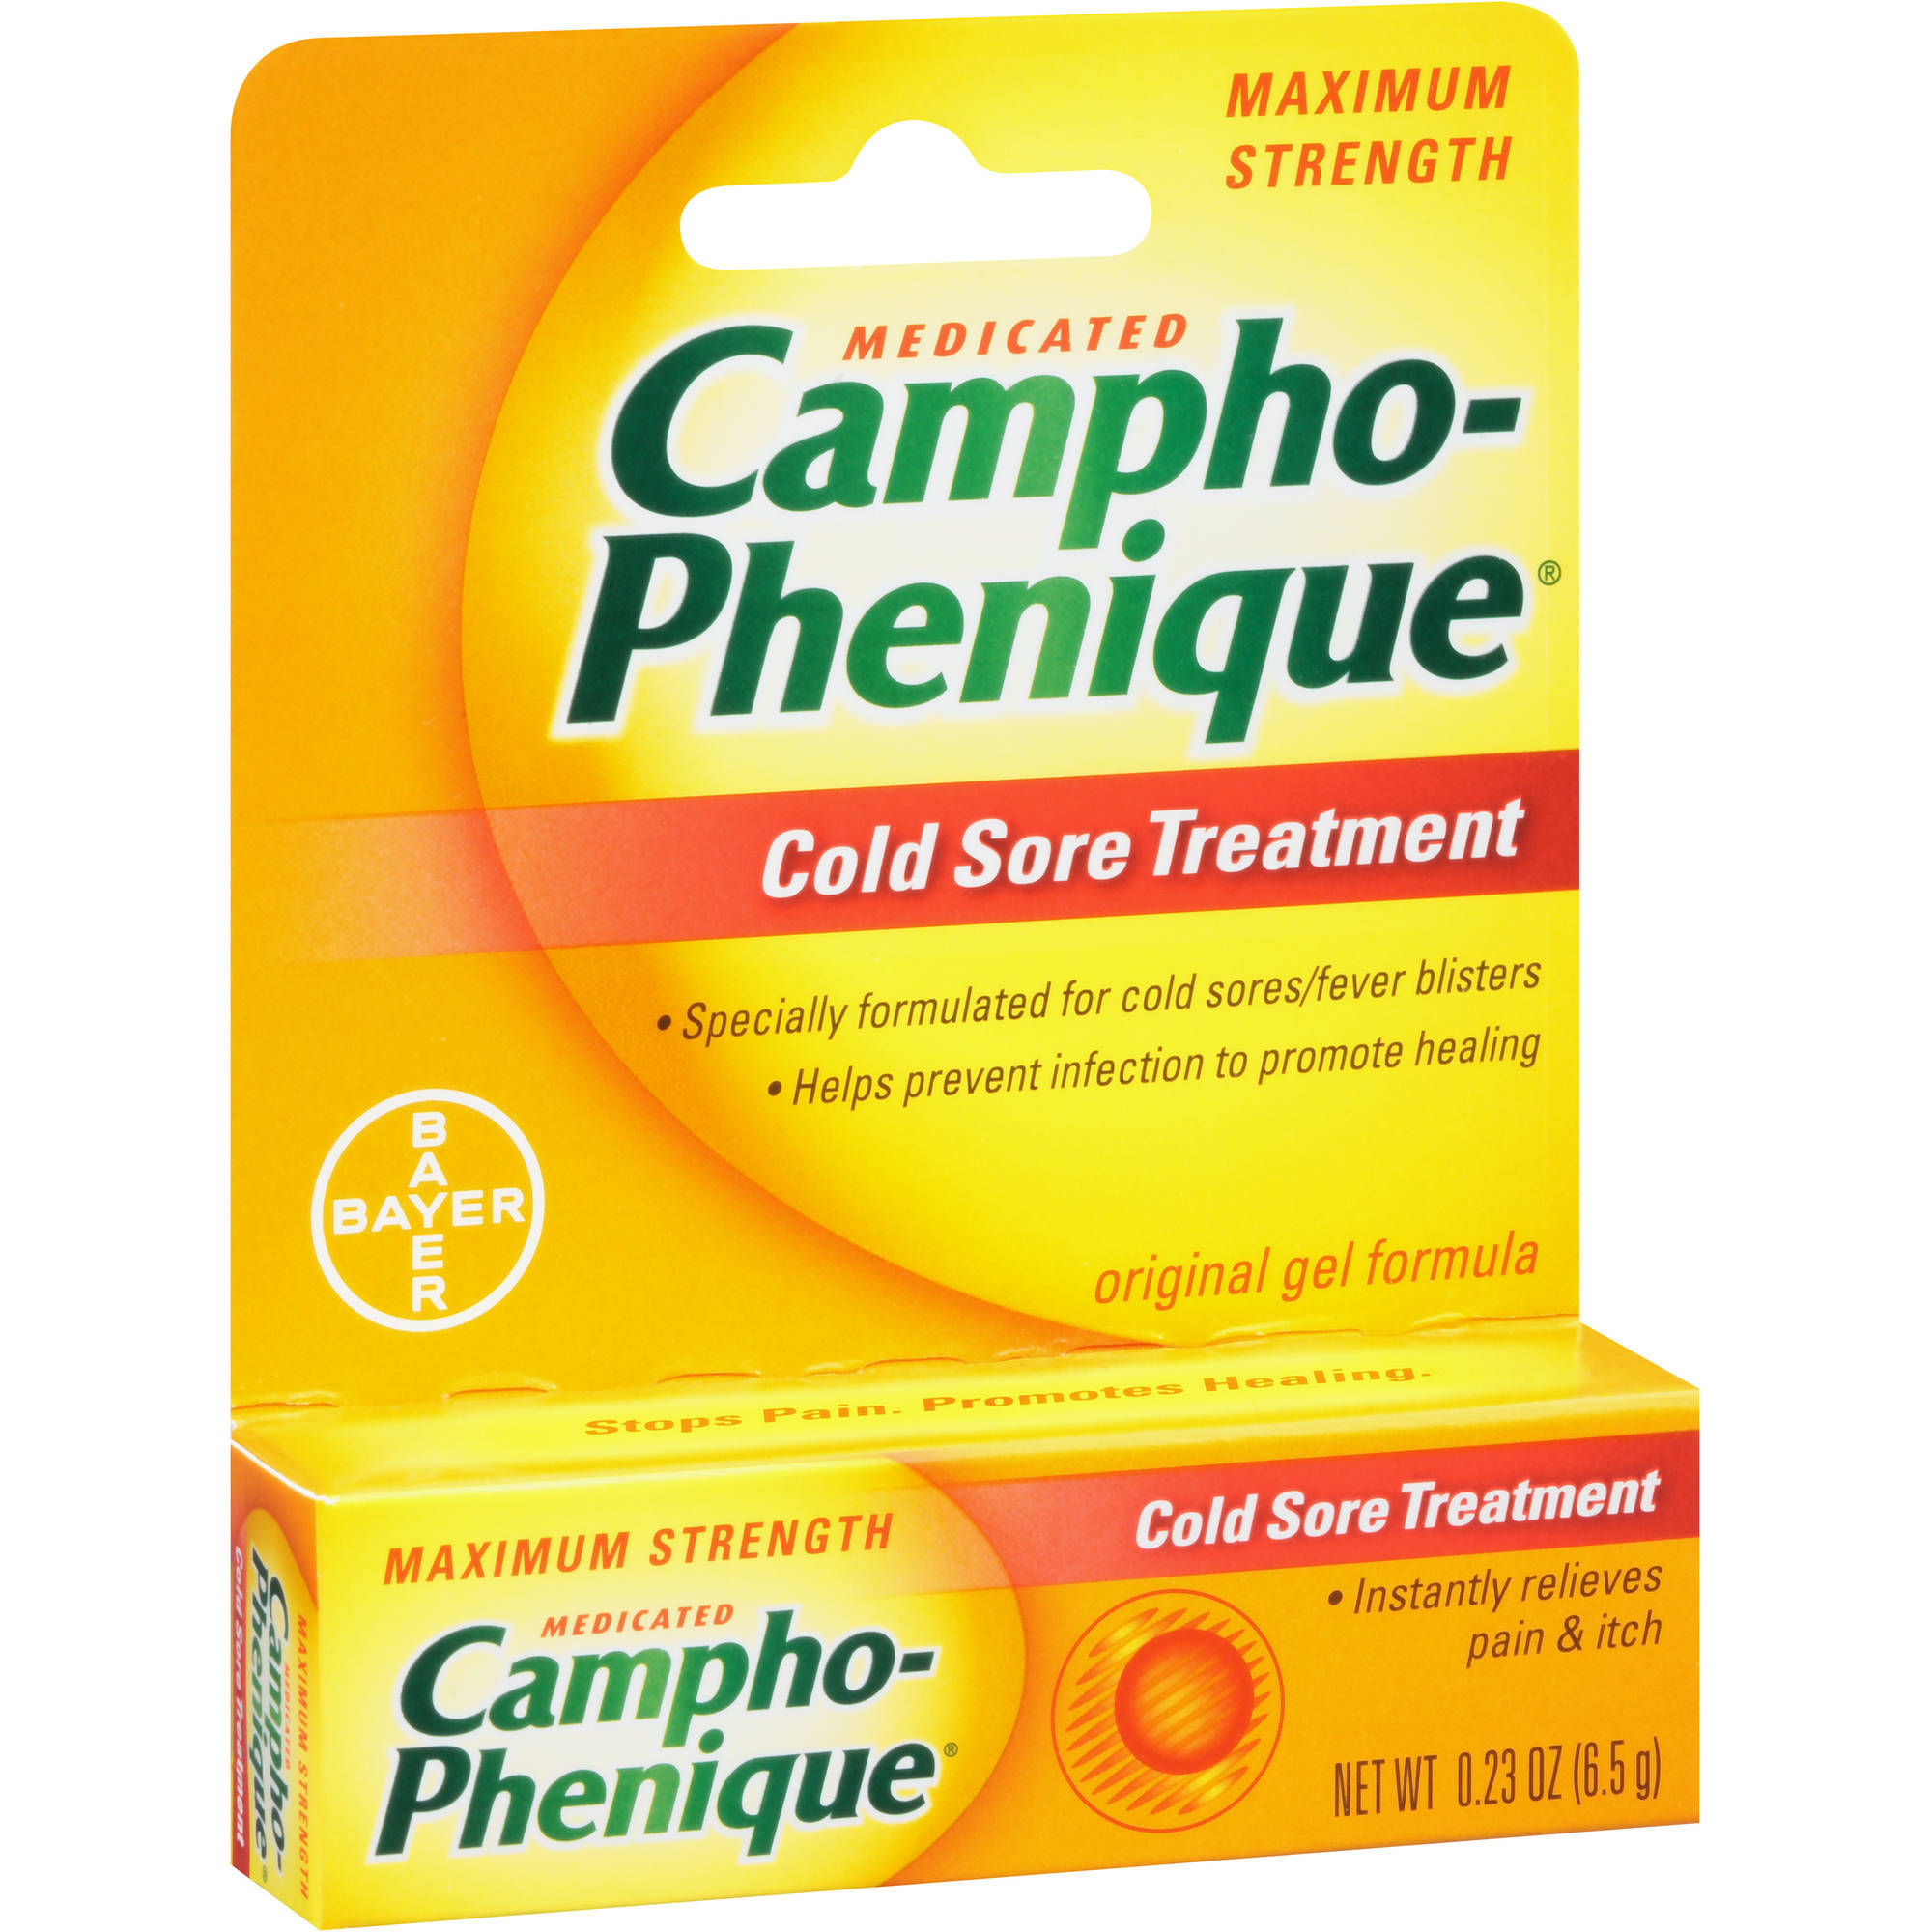 Campho-Phenique Maximum Strength Cold Sore Treatment, 0.23 oz